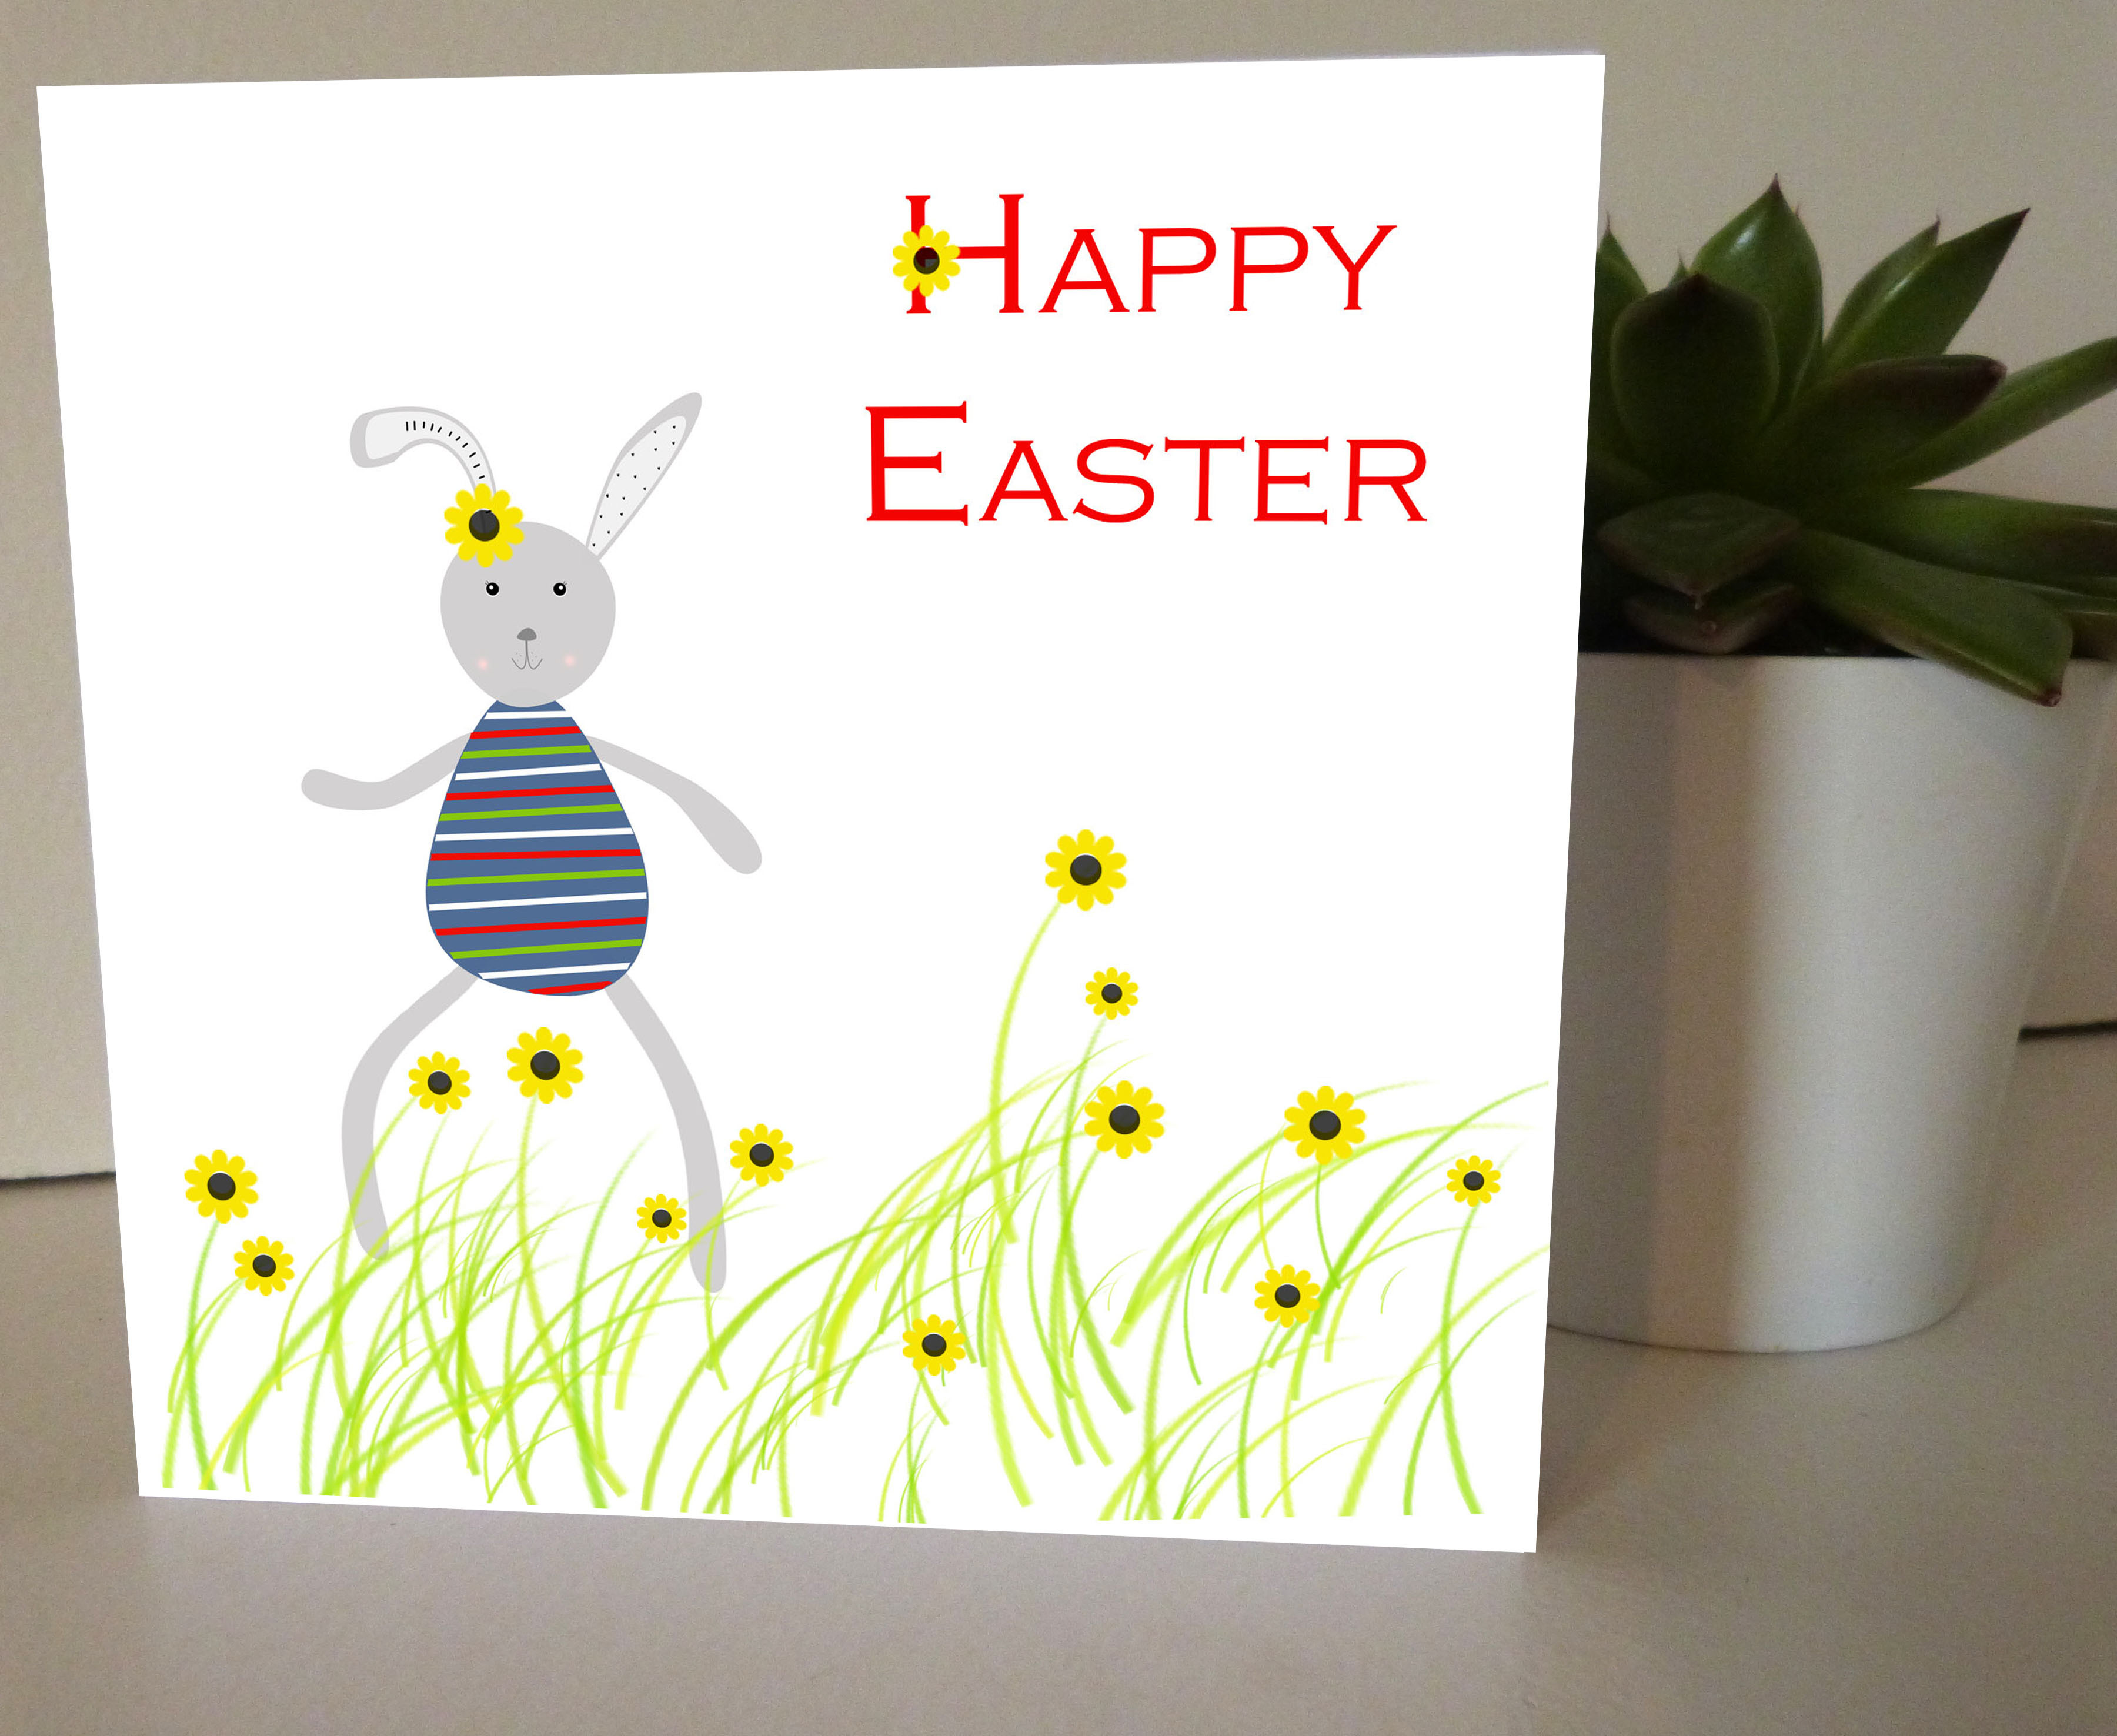 C for creations designer greeting cards and wall decors cards easter card easter bunny happy easter greeting card kristyandbryce Gallery